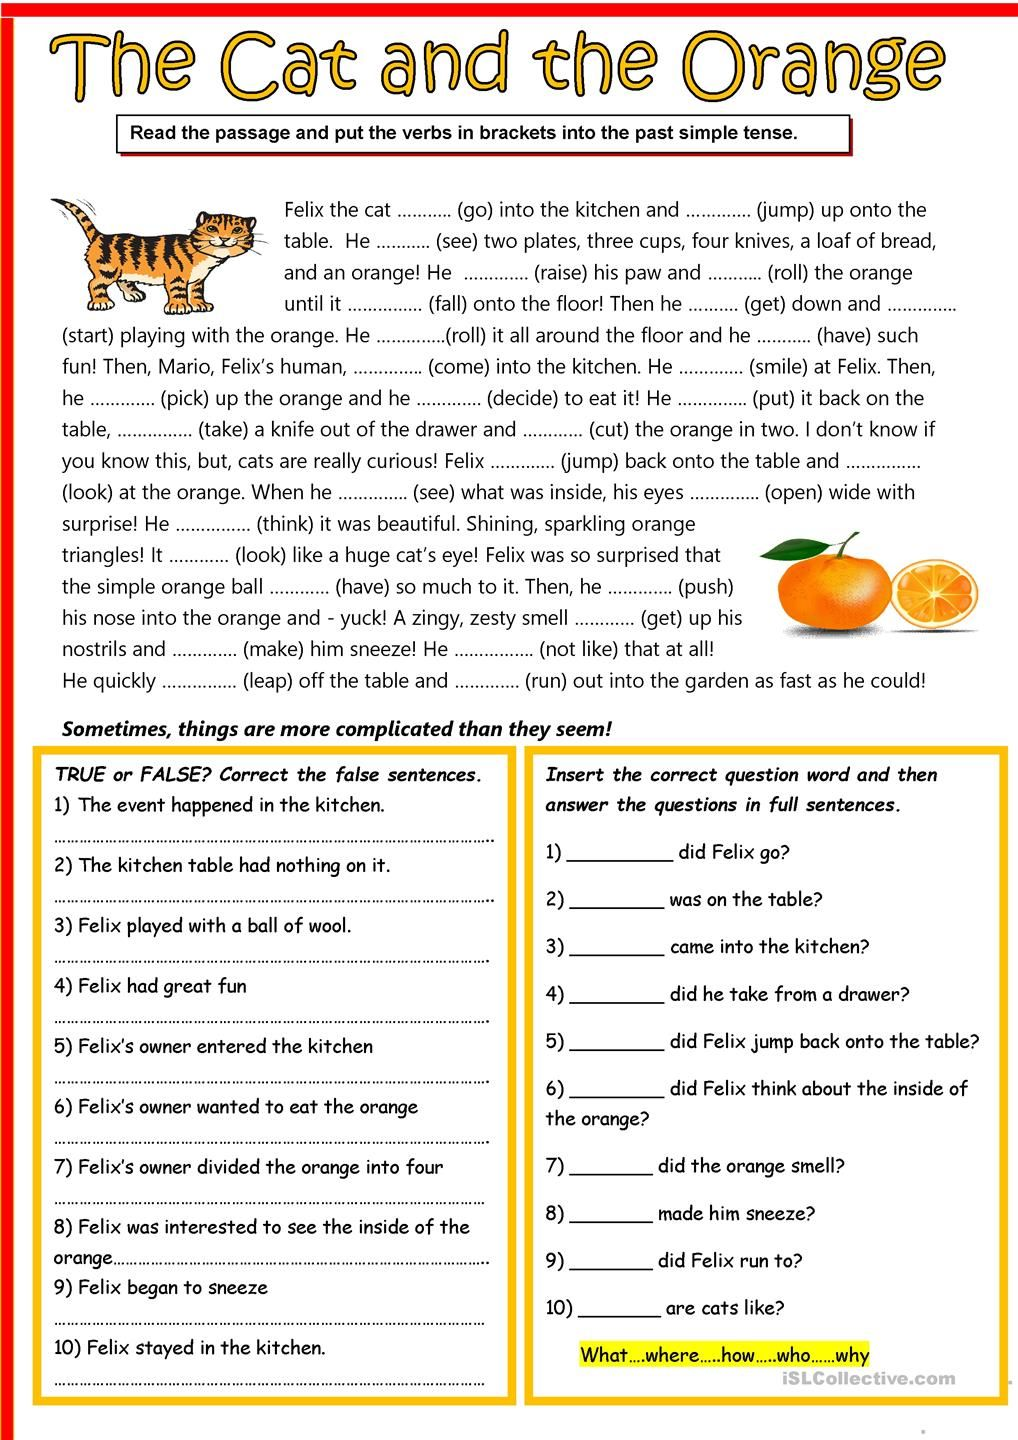 The Cat And The Orange Reading Comprehension Lessons Reading Comprehension Reading Comprehension Worksheets [ 1440 x 1018 Pixel ]